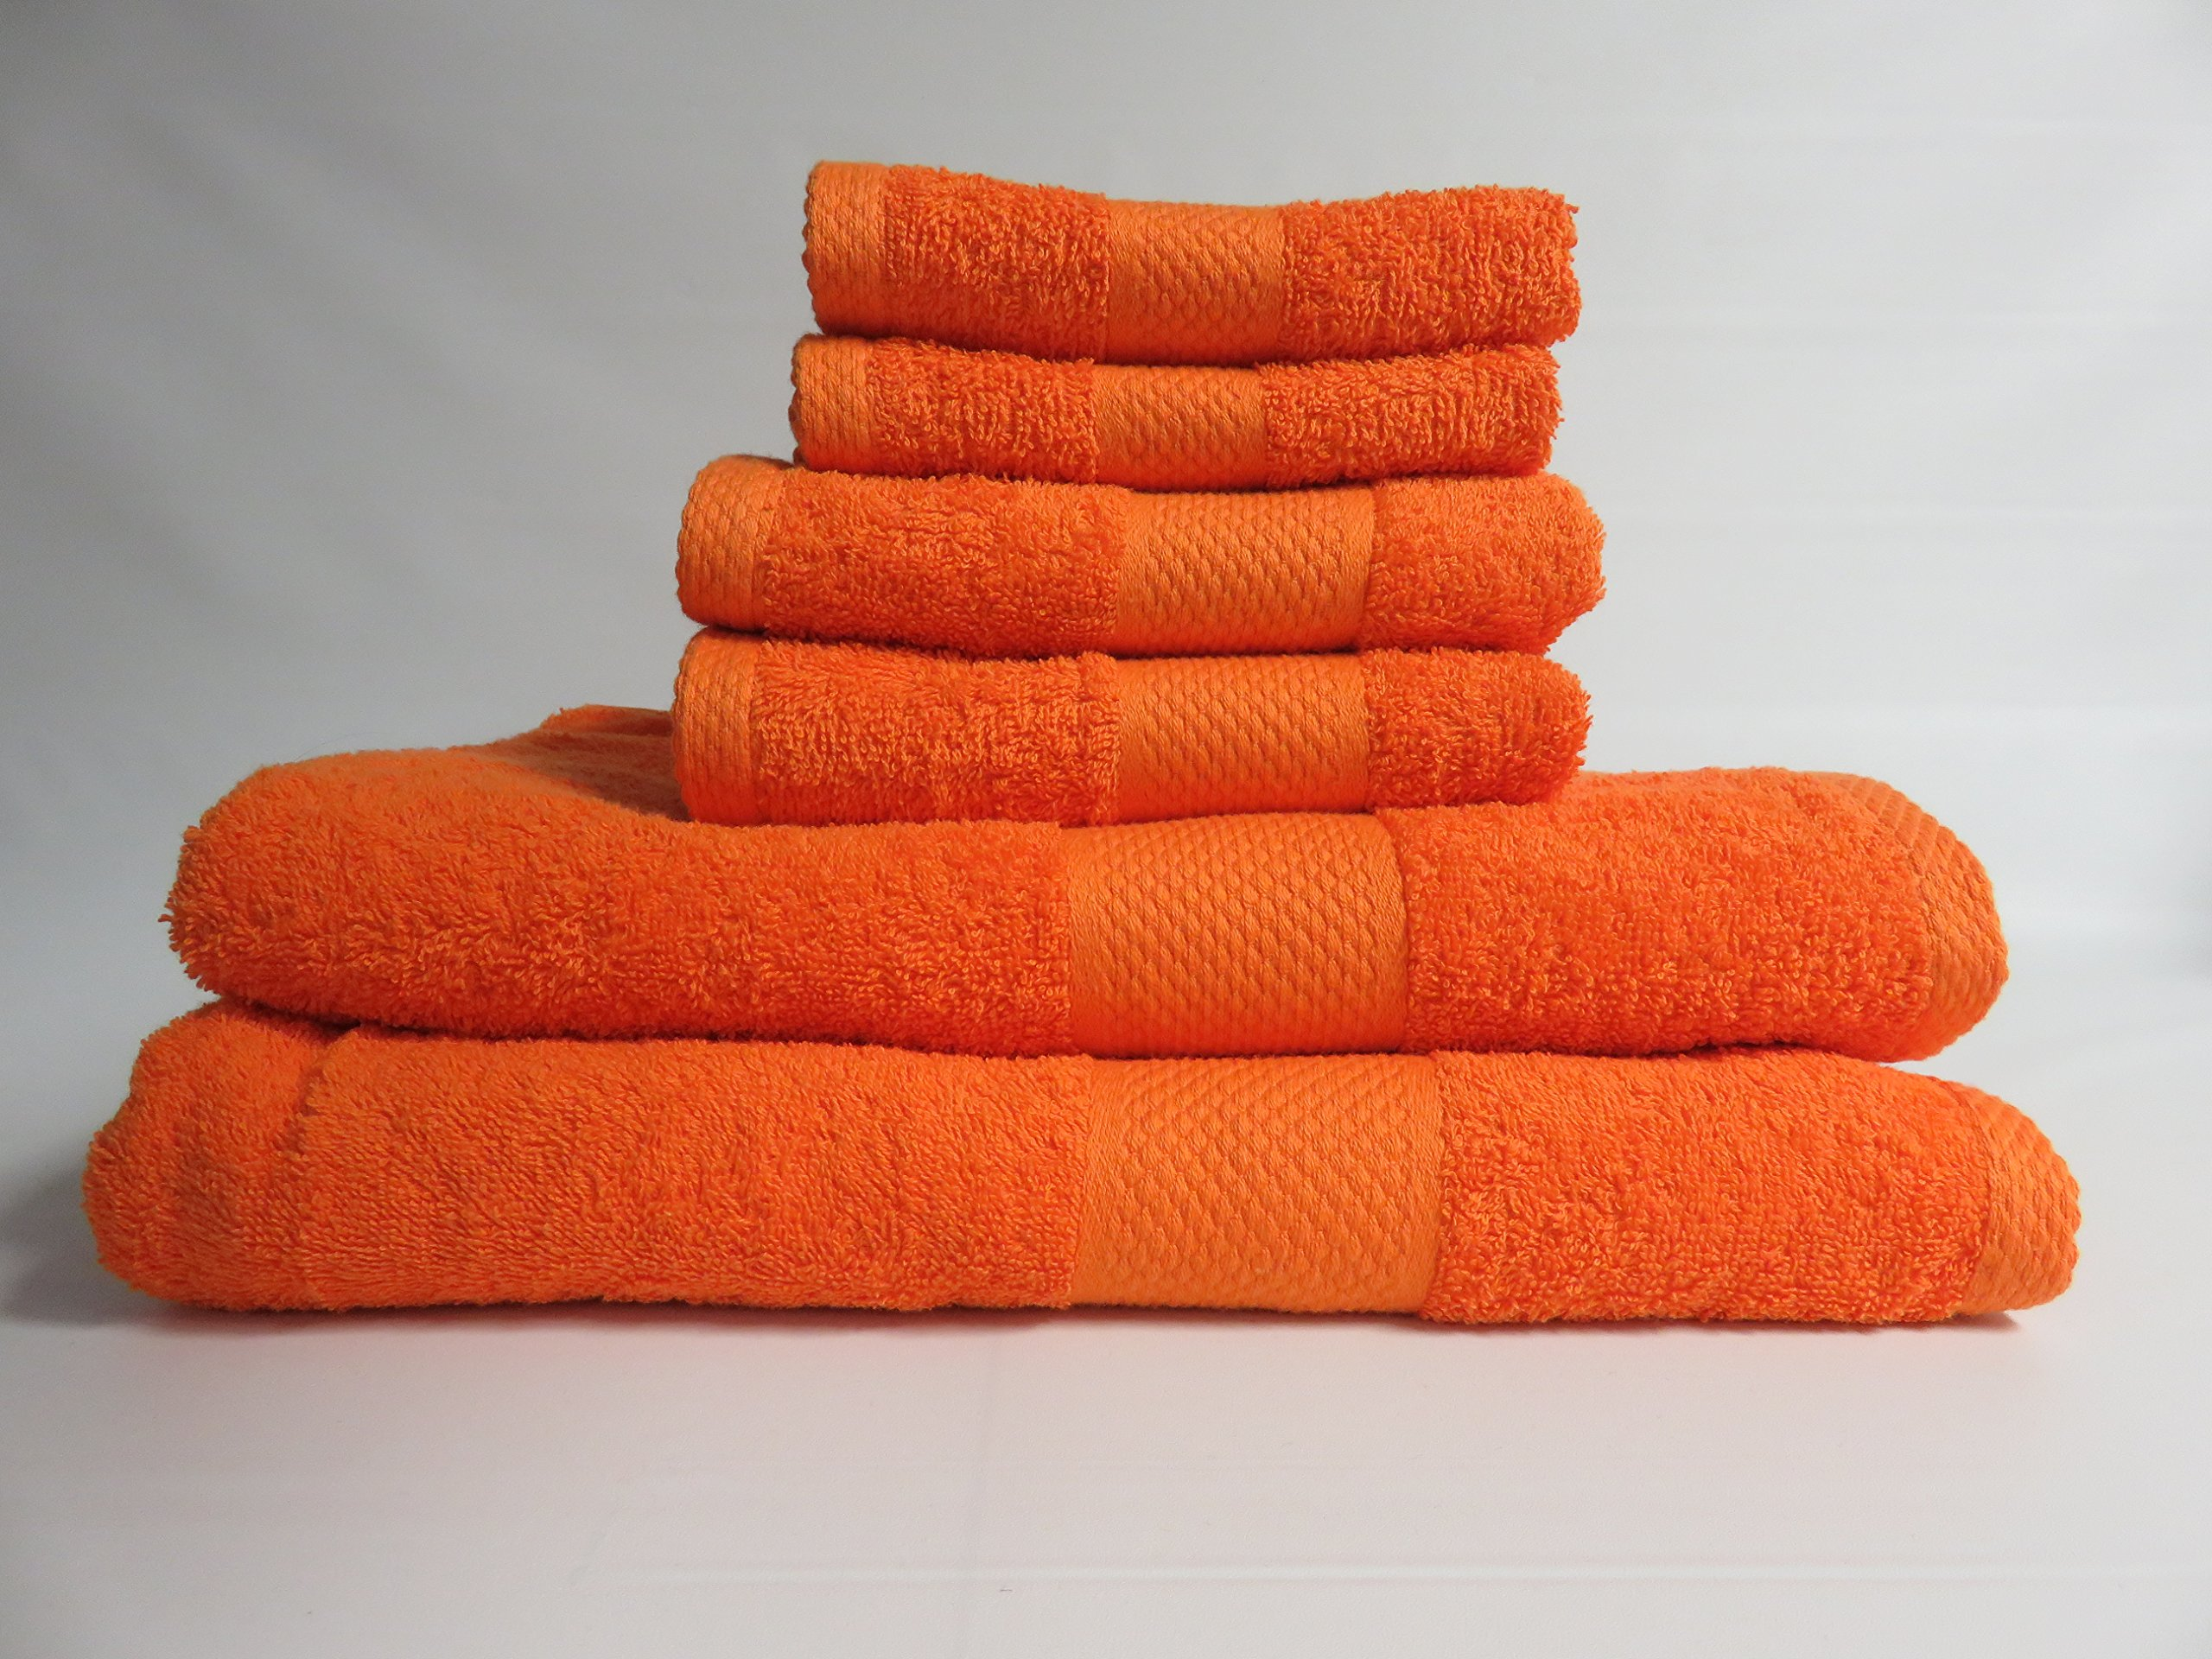 Lantrix SOFT 100% Natural COTTON 6 Piece TOWEL SET (ORANGE) by Lantrix